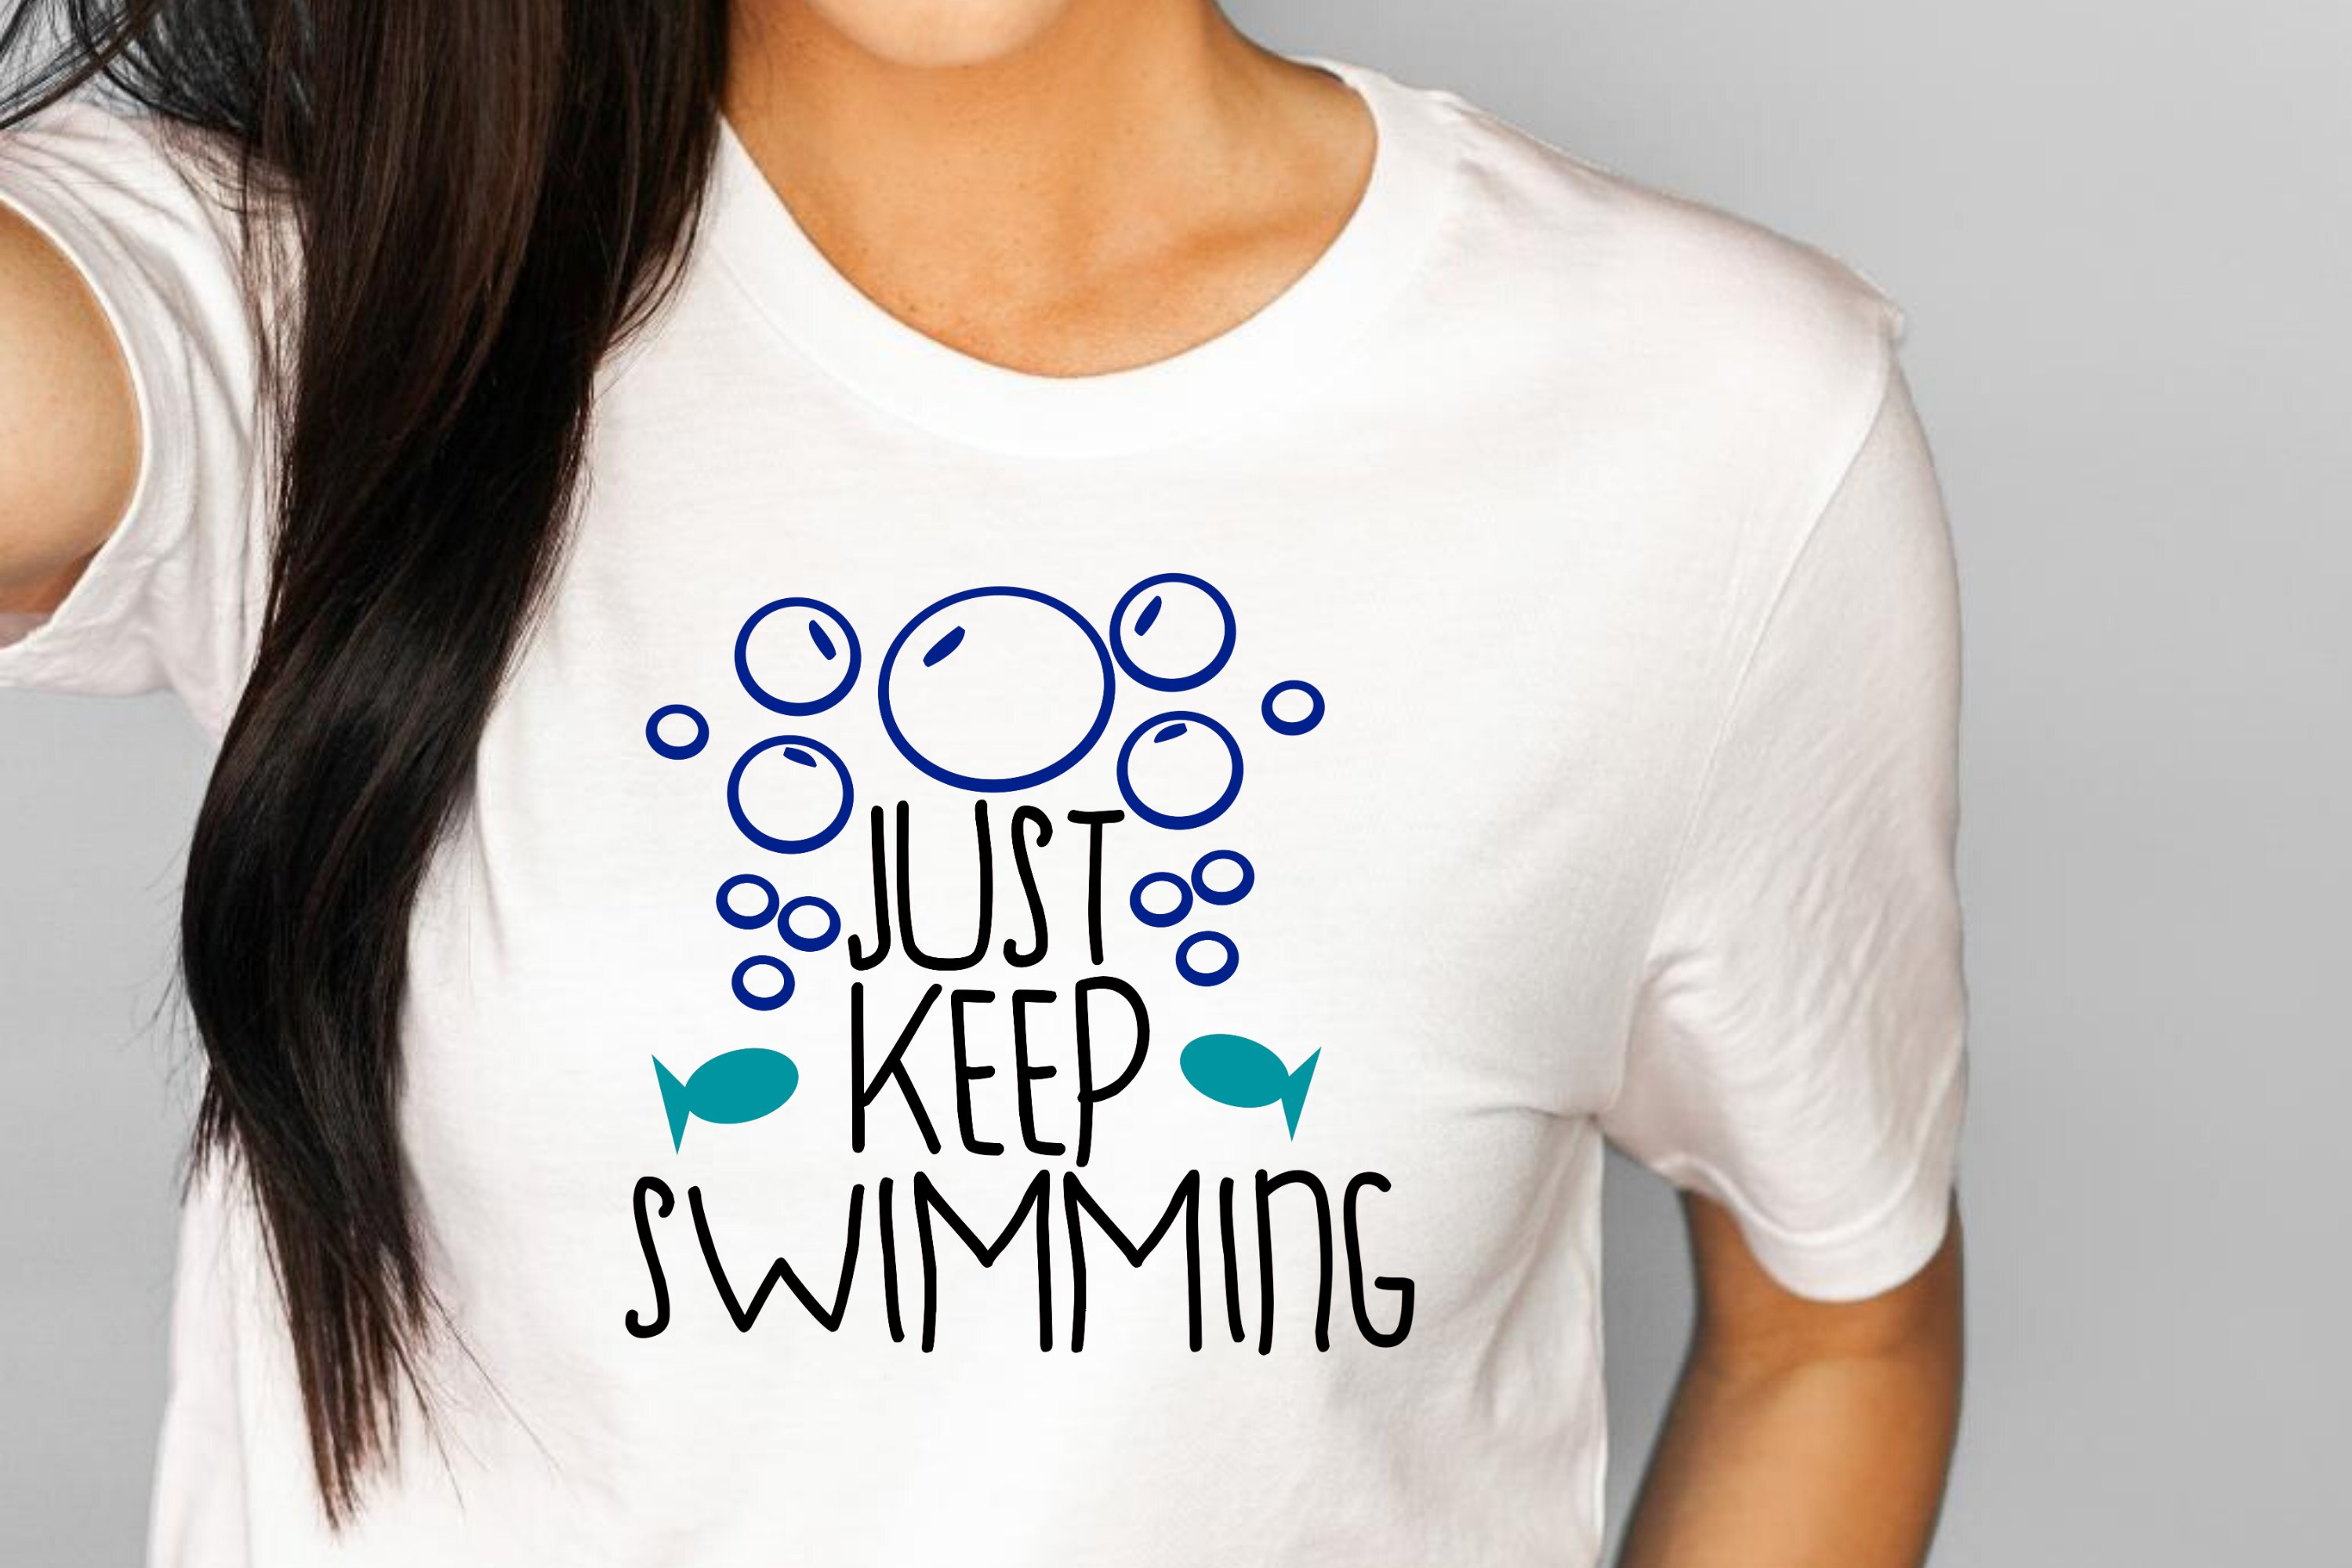 Just Keep Swimming Svg Png Dxf Classroom Decal 551785 Cut Files Design Bundles